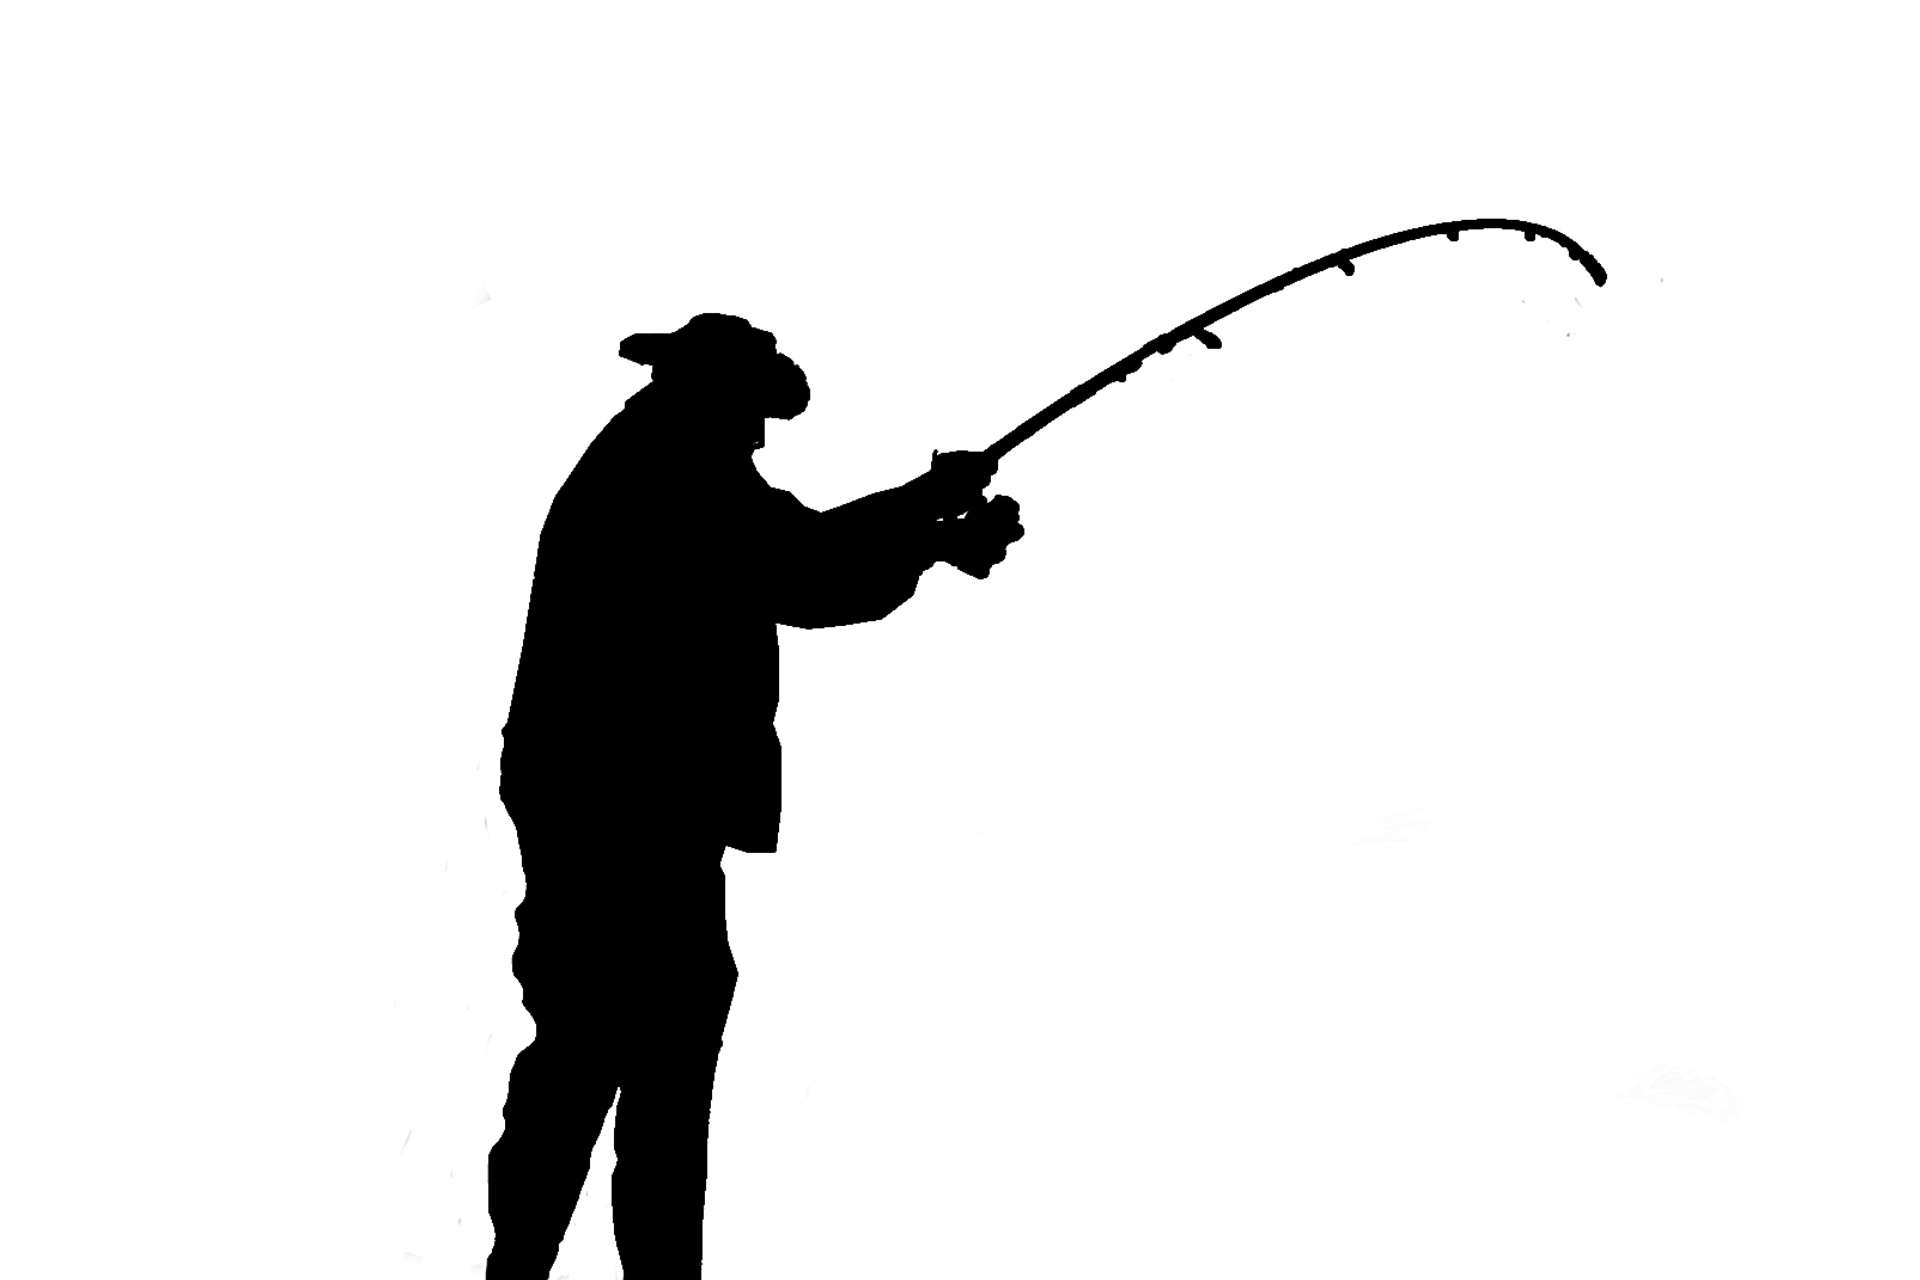 1920x1280 Angler Silhouette Free Stock Photo